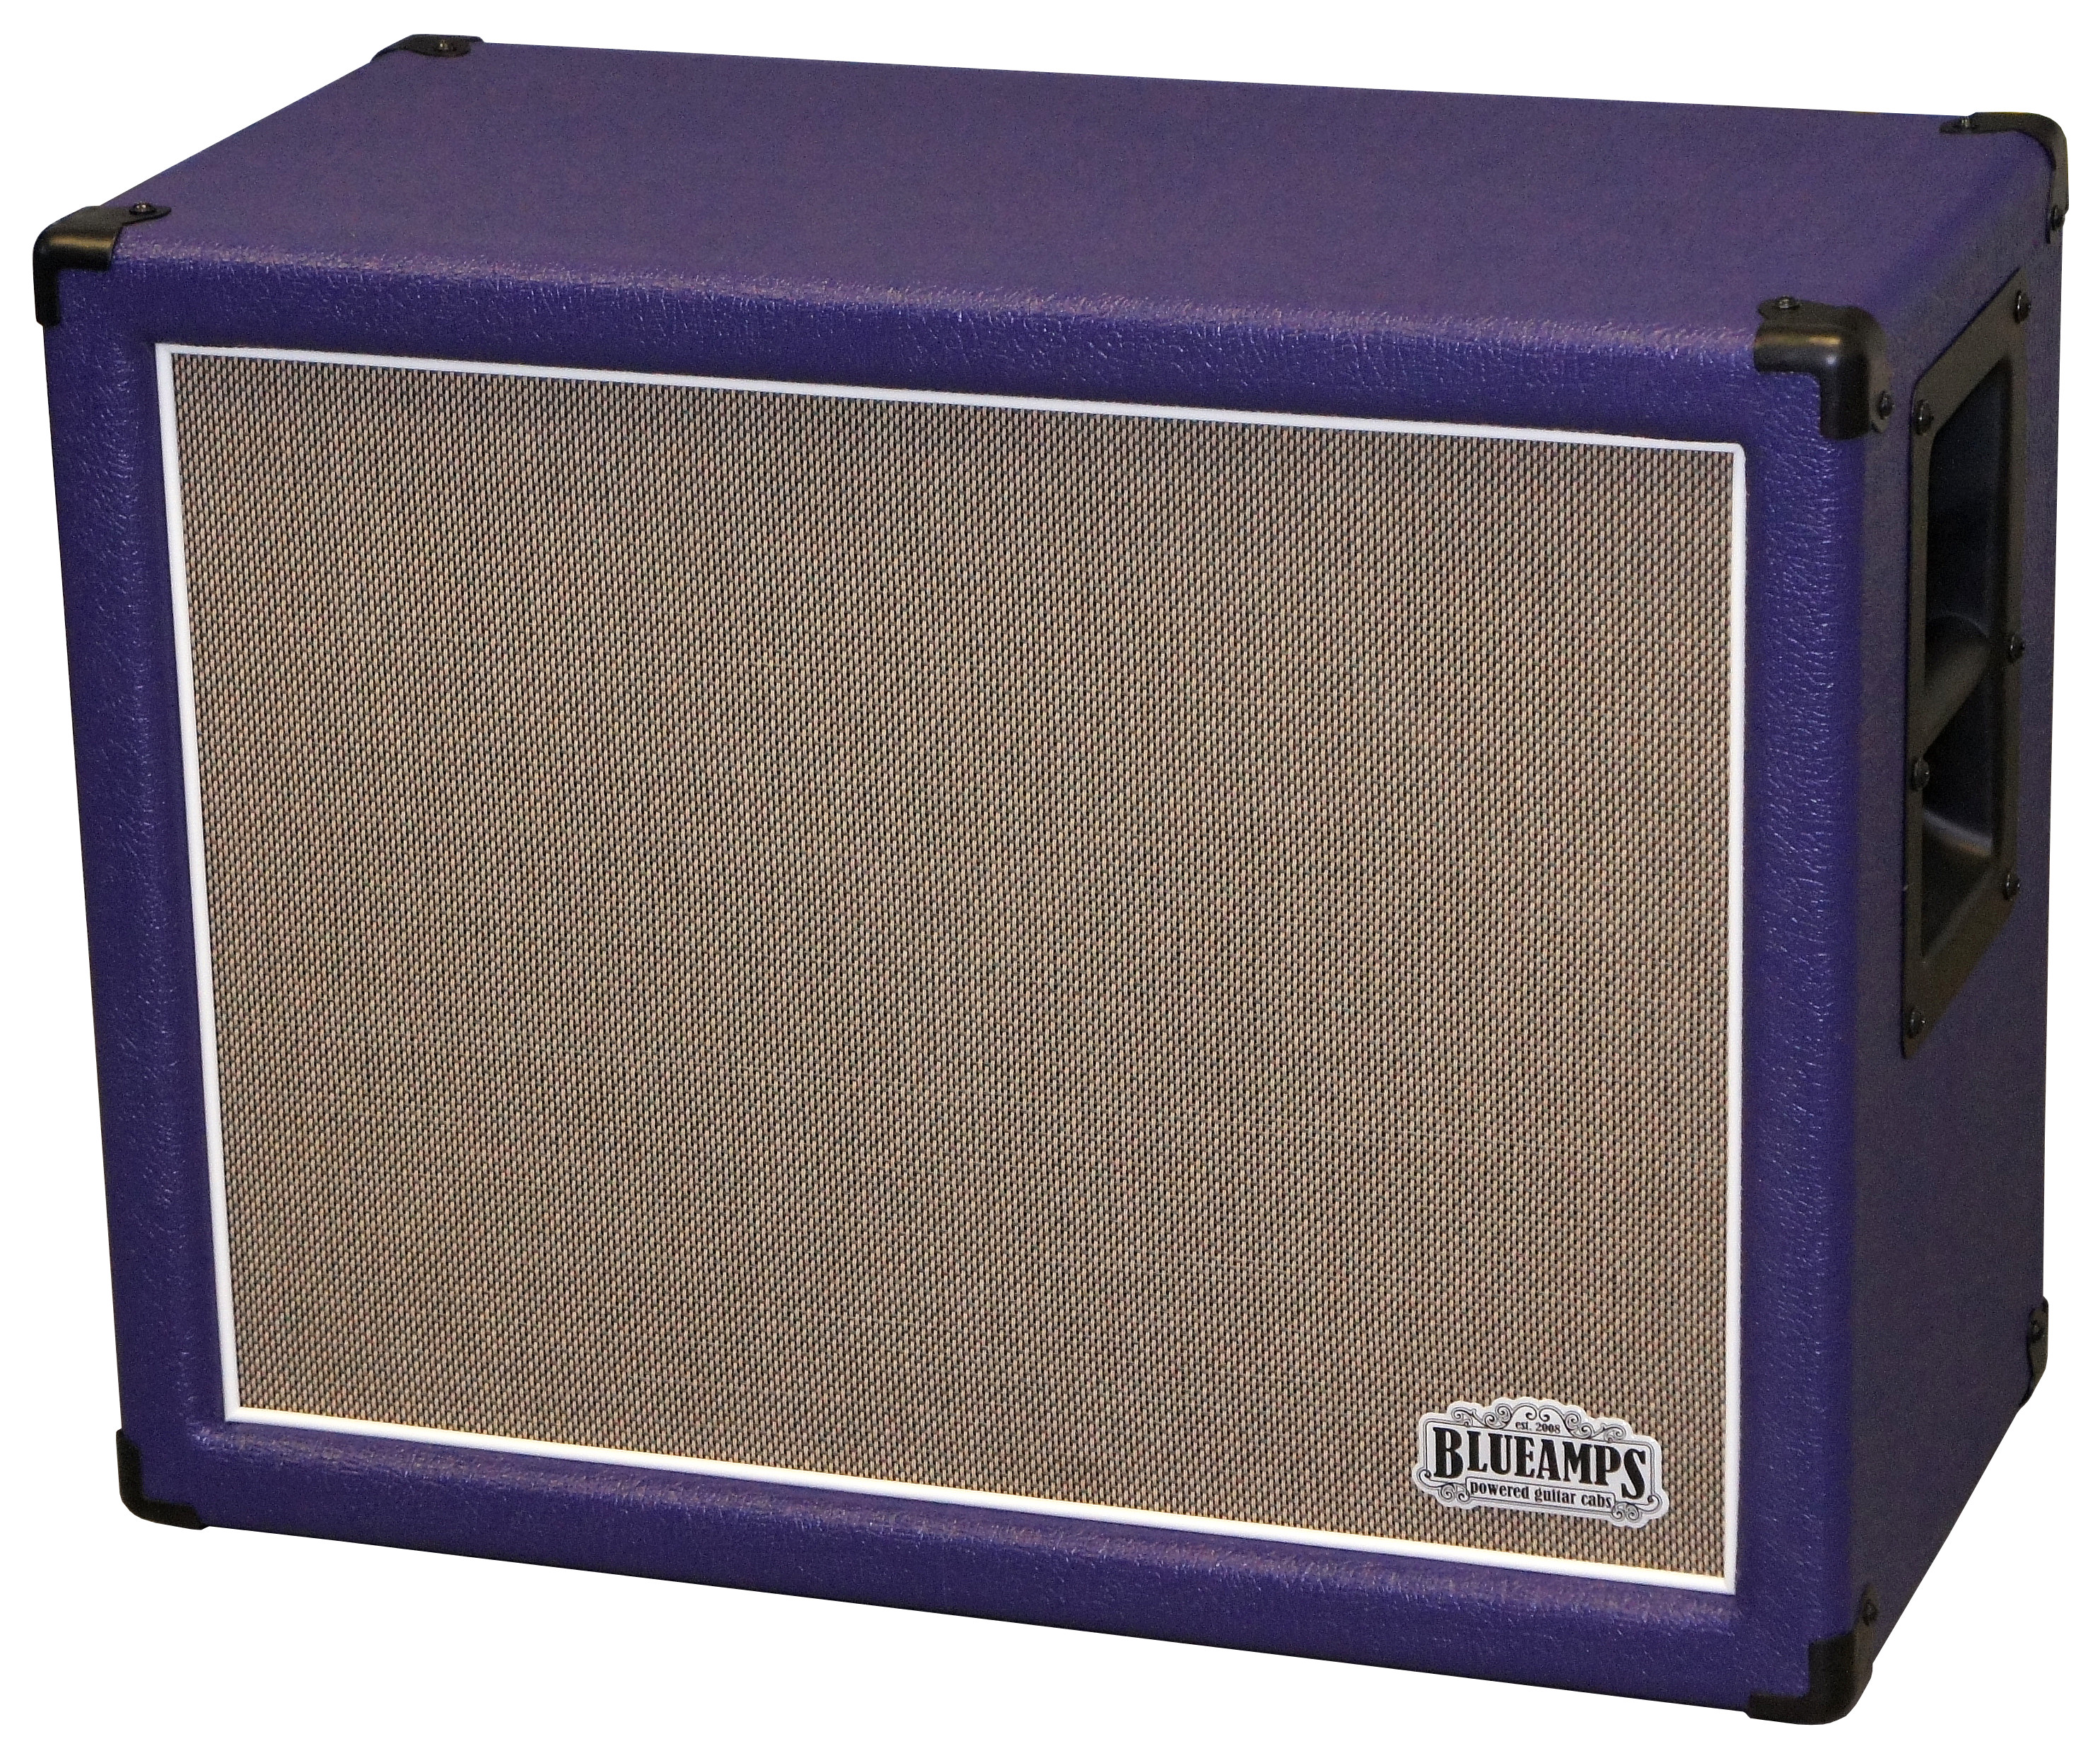 modellers guitar frfr cabs musicradar amp new elements news for guitars launches matrix cabinet